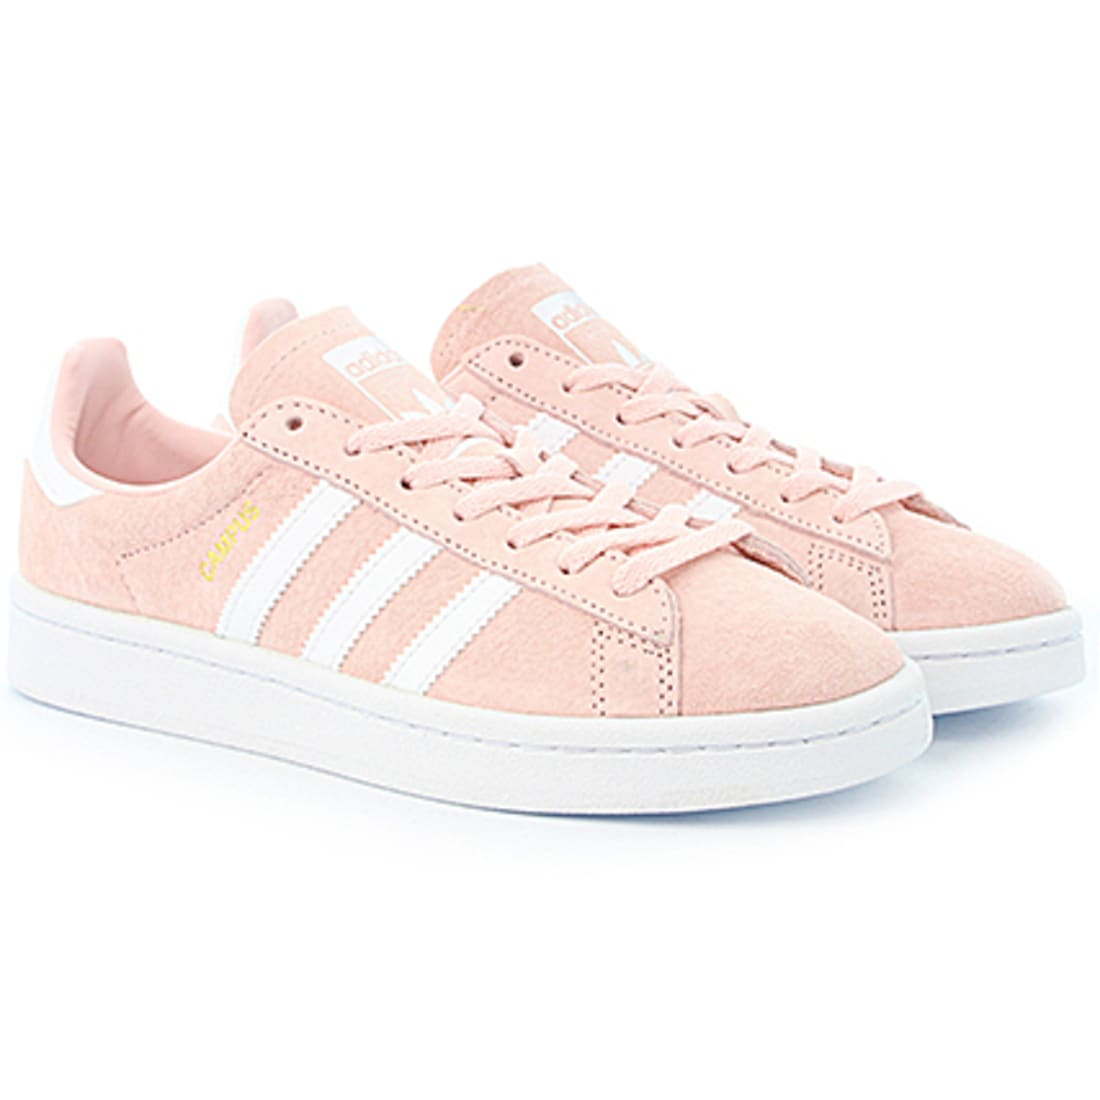 adidas Baskets Femme Campus BY9845 Icey Pink Footwear